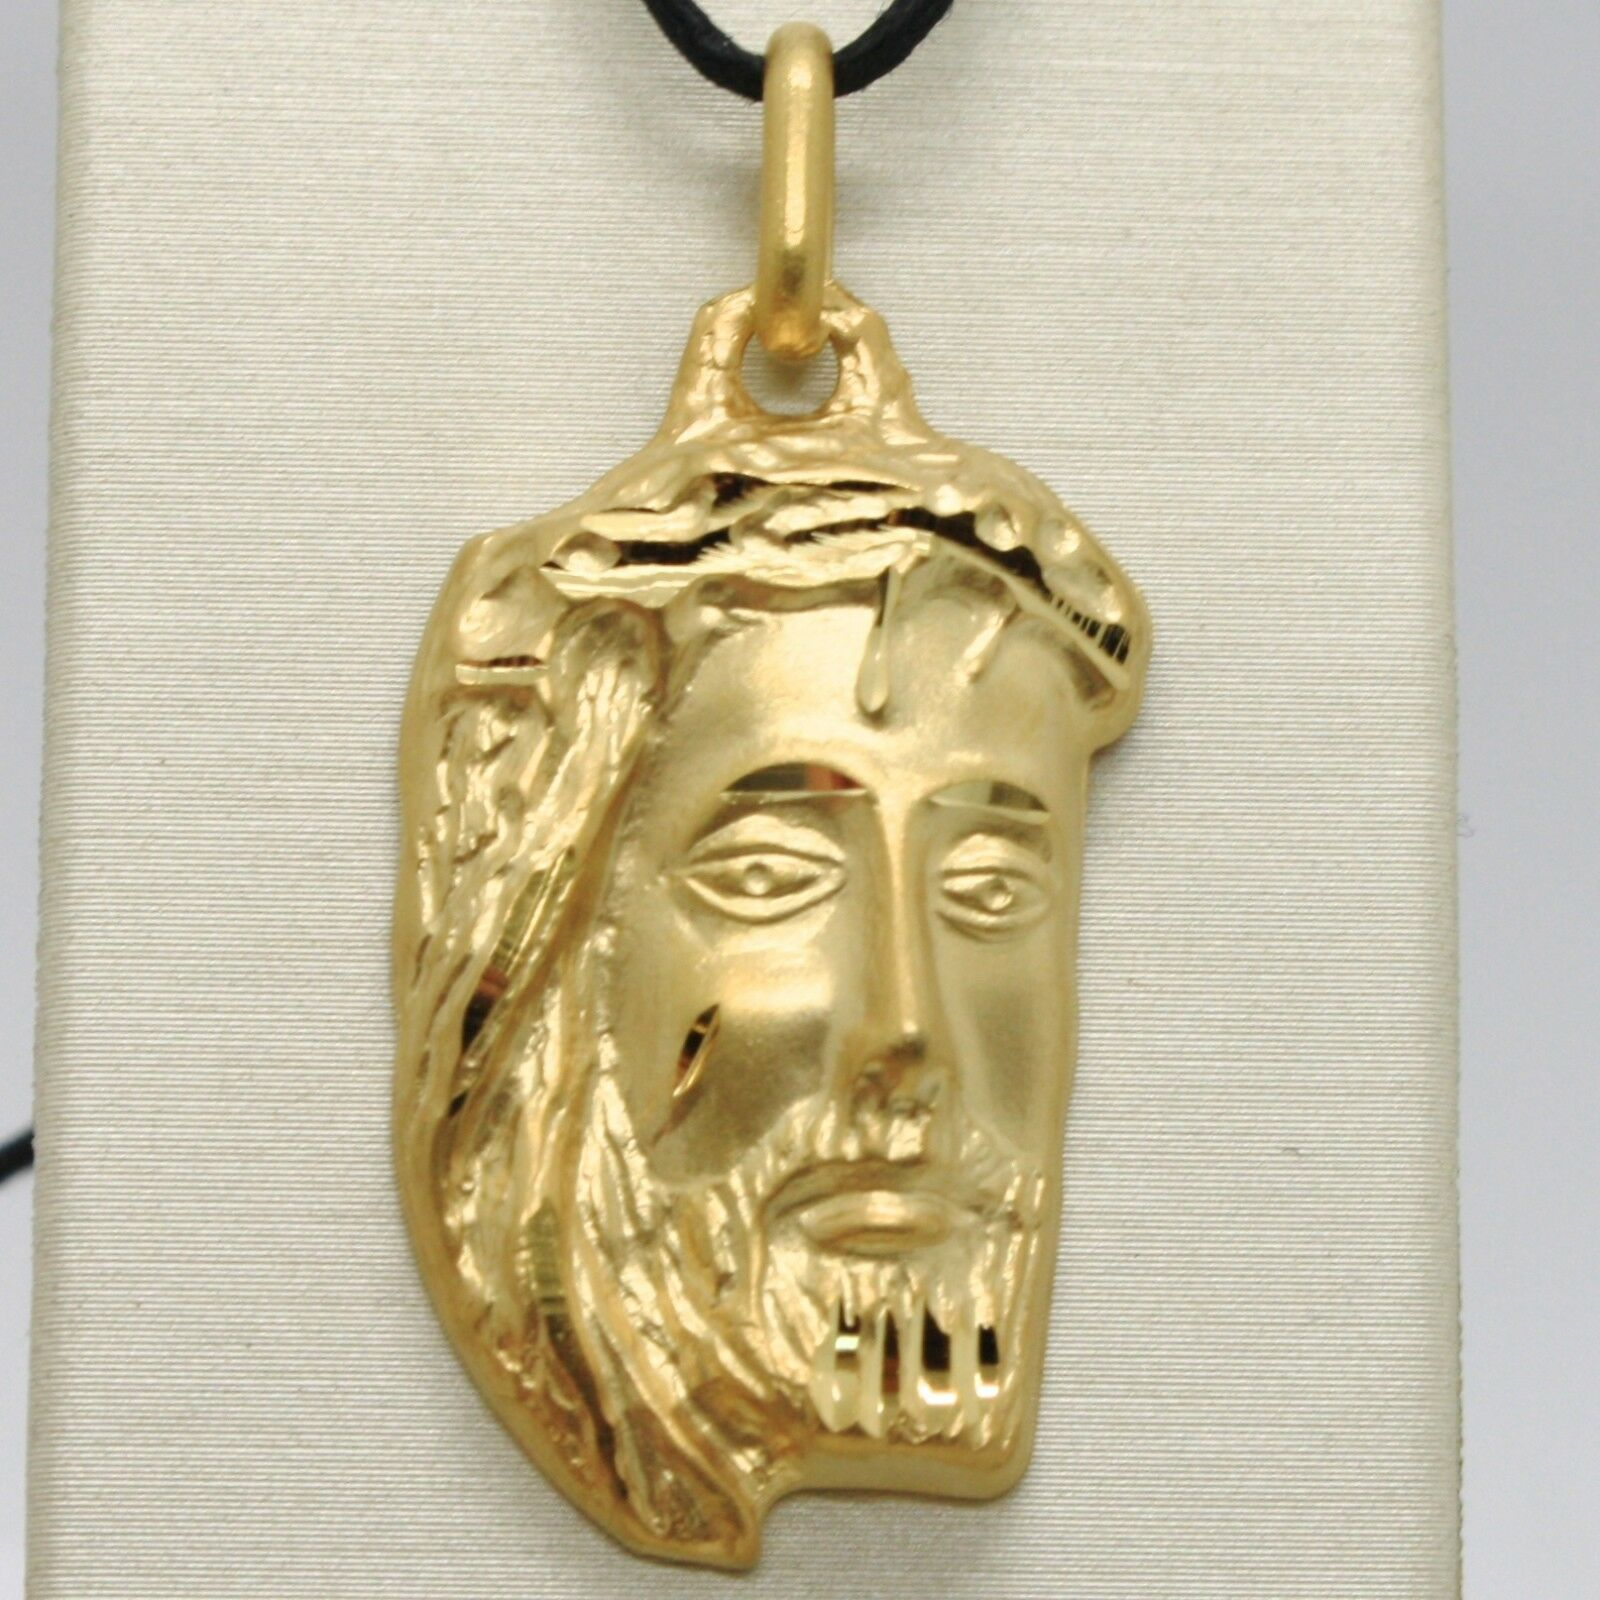 18K YELLOW GOLD JESUS FACE PENDANT CHARM 42 MM, 1.6 IN, FINELY WORKED ITALY MADE